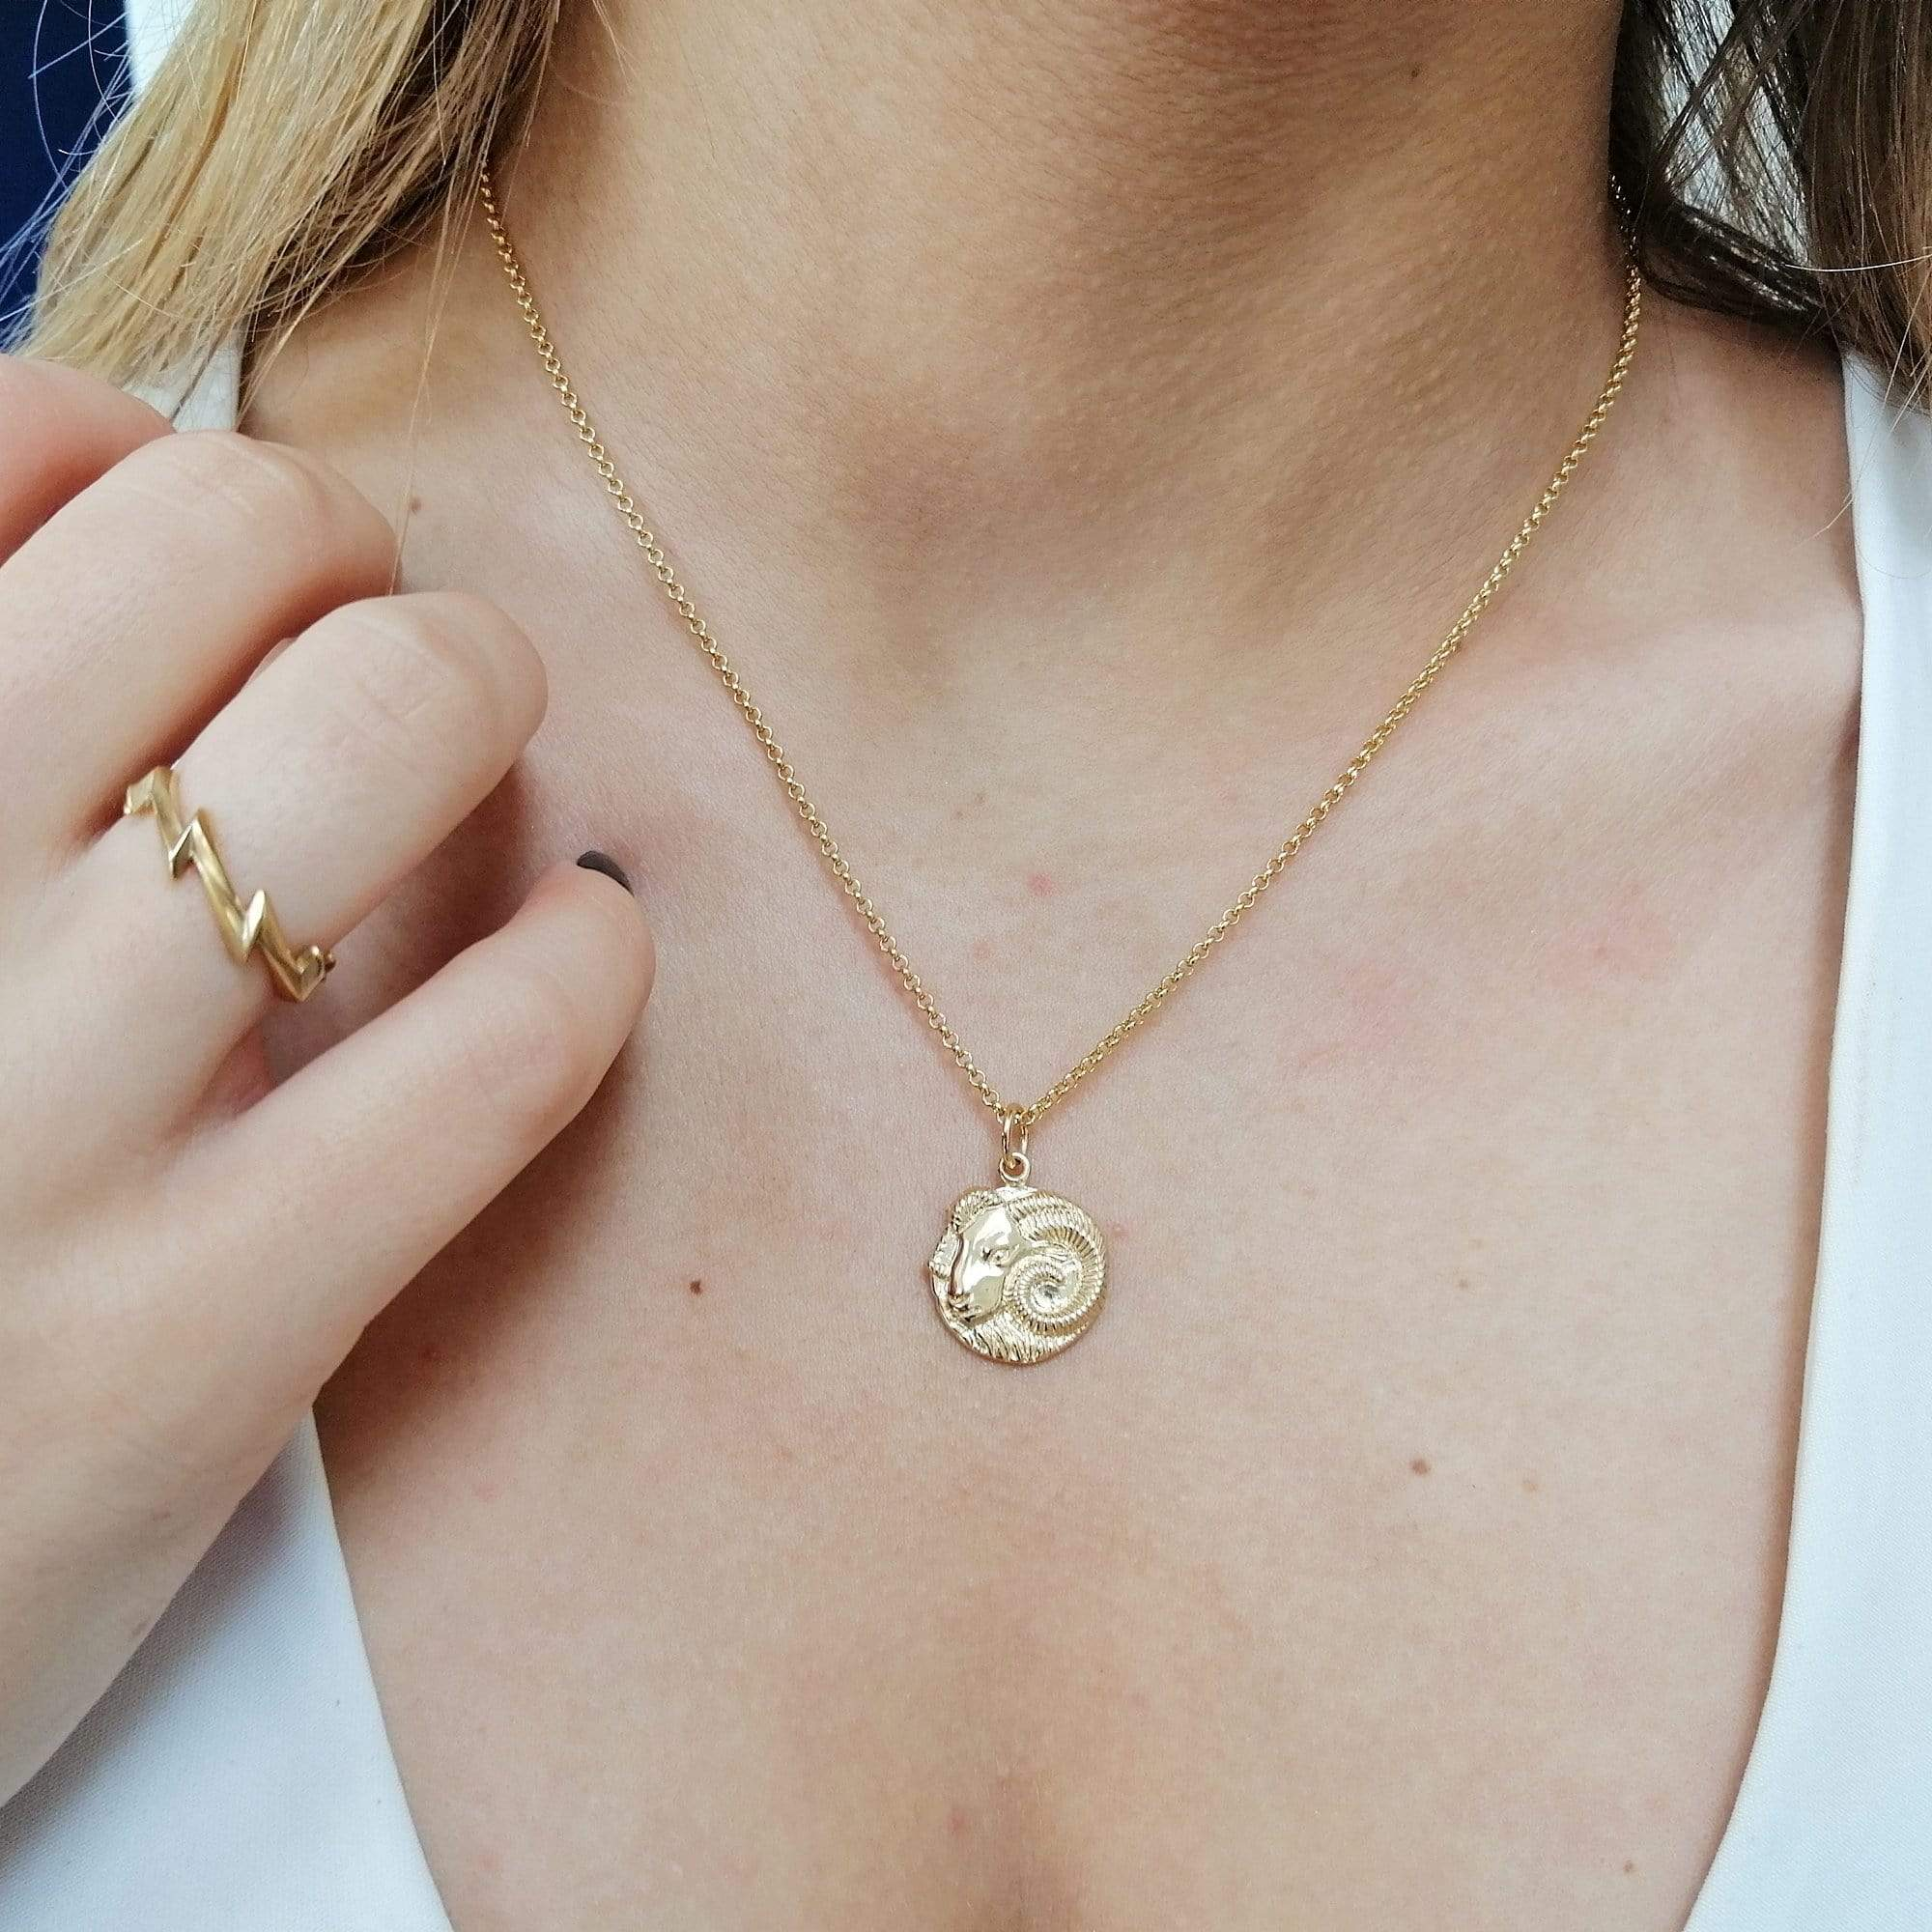 Engraved Gold Plated Aries Zodiac Necklace - Lily Charmed